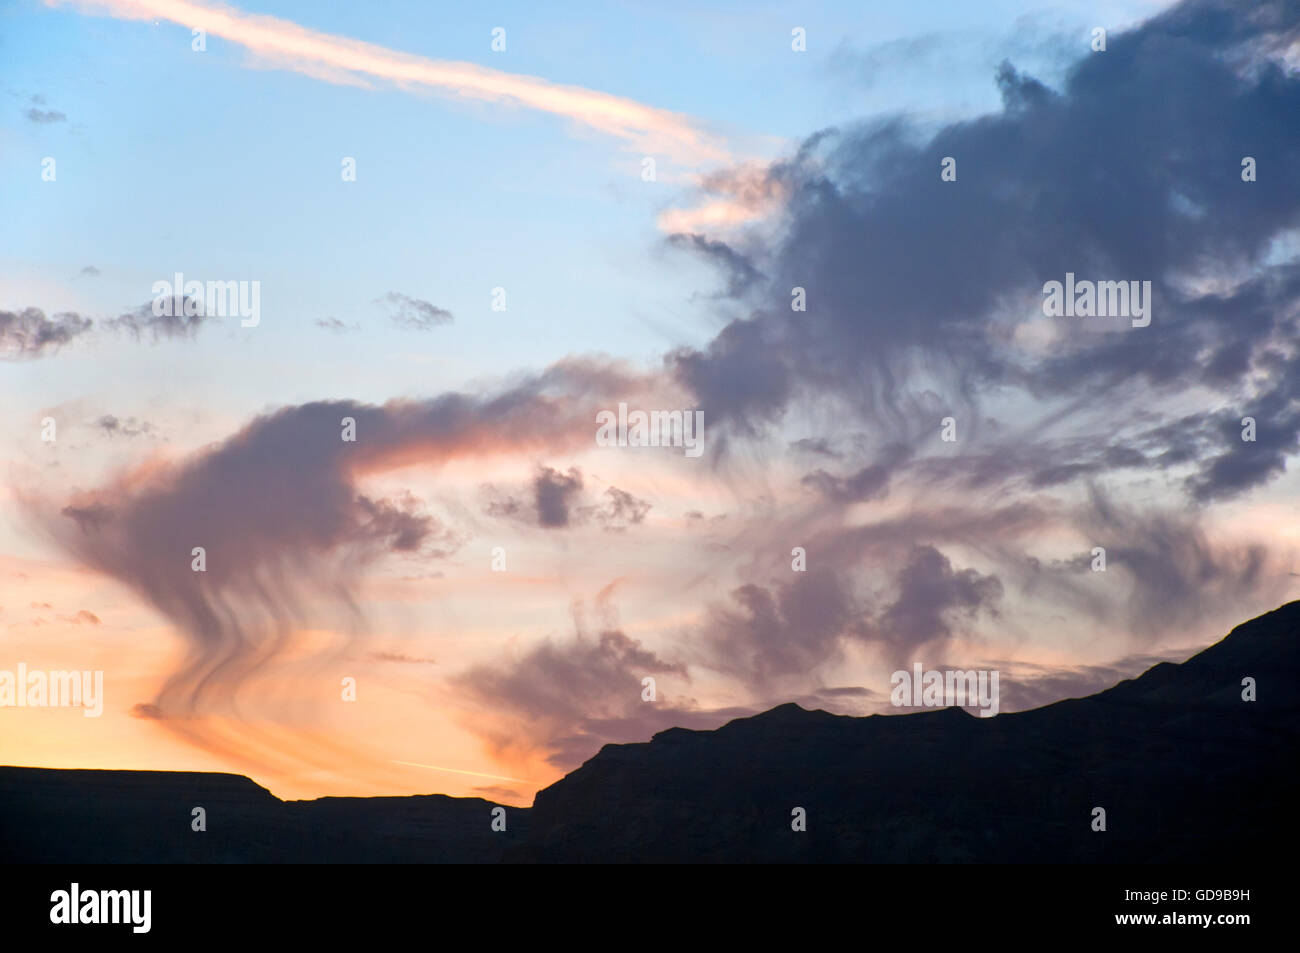 Unique sunset clouds over desert - Stock Image